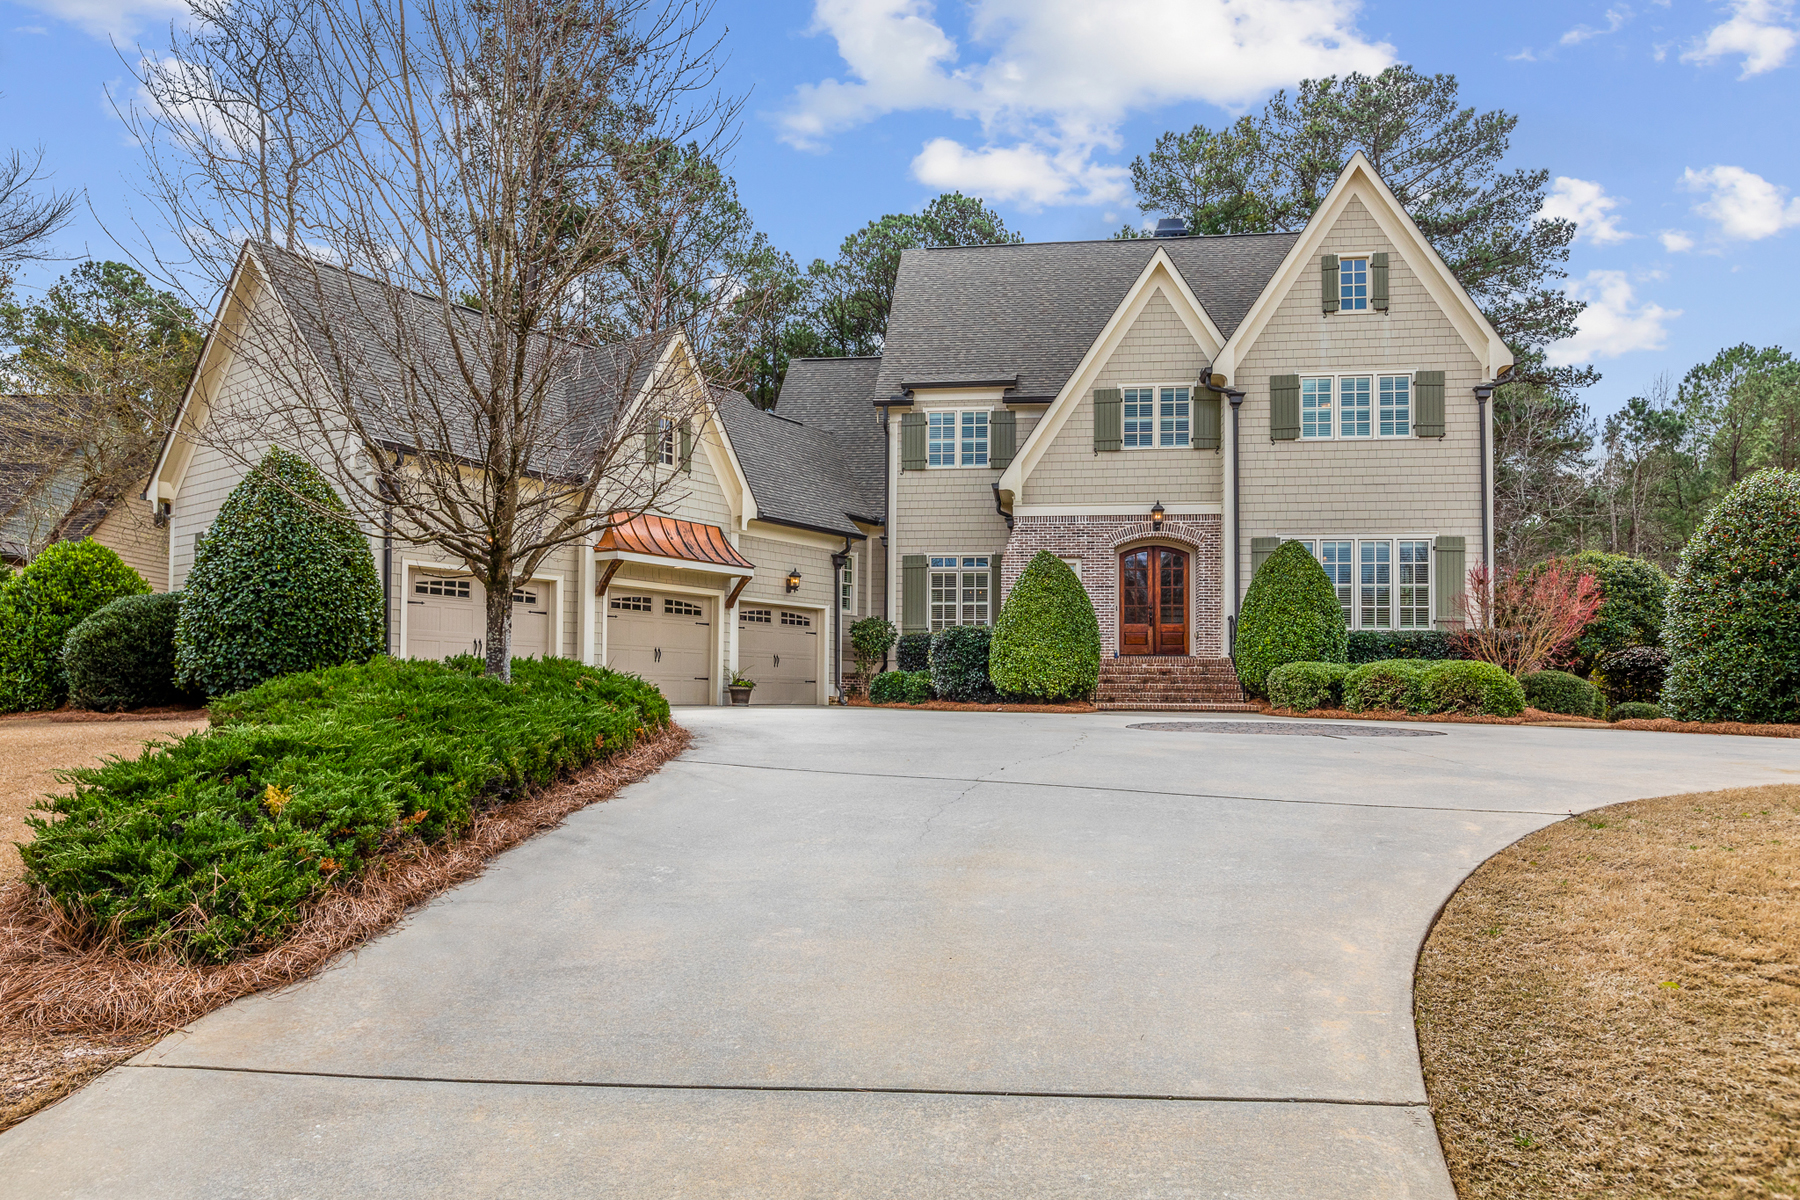 Single Family Homes for Sale at Beautiful Home in Newhaven 205 Newhaven Drive Fayetteville, Georgia 30215 United States